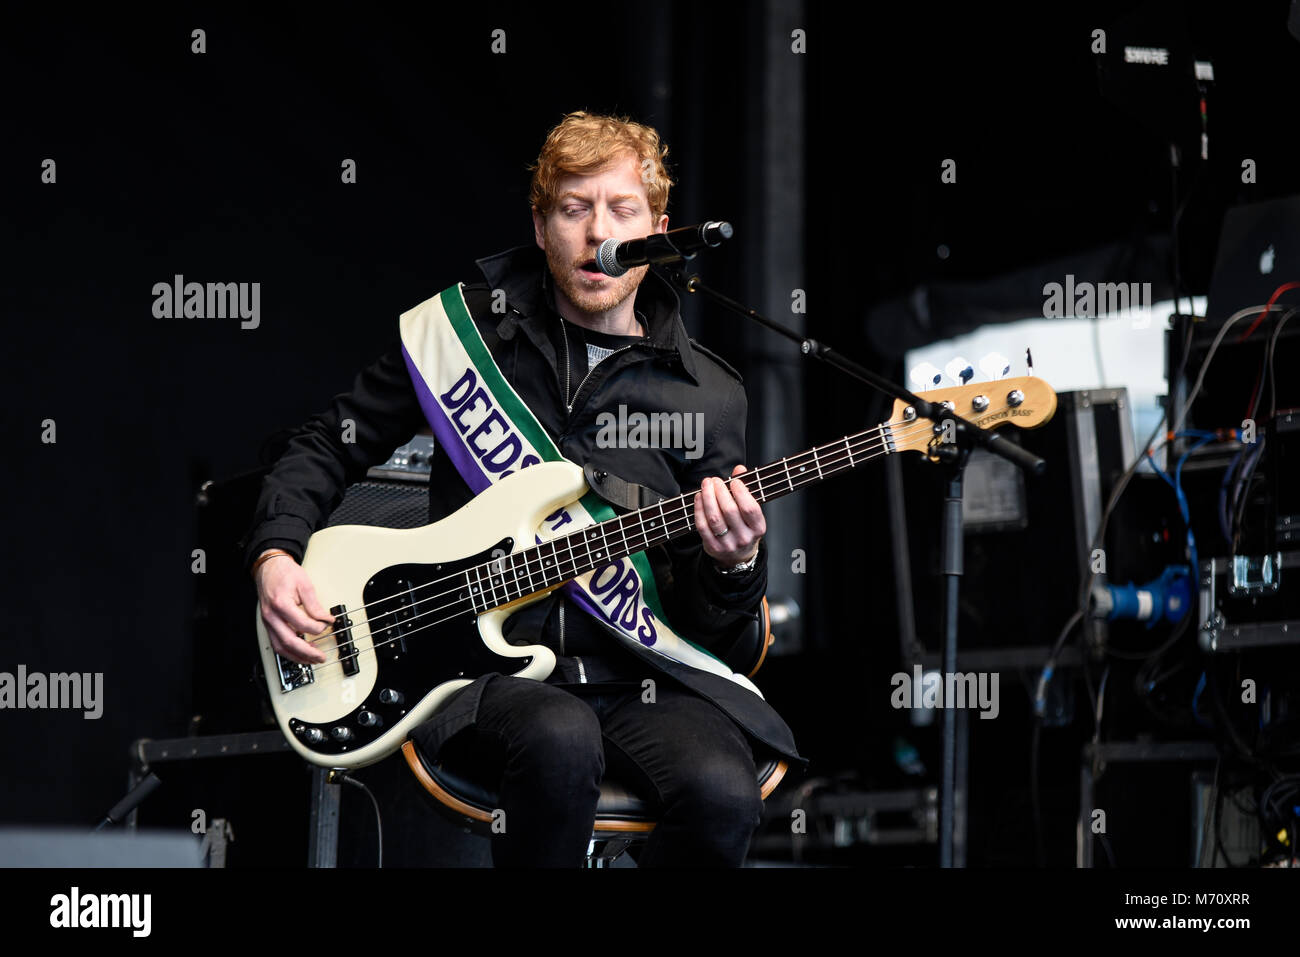 James Johnston of Biffy Clyro performing at the March 4 Women women's equality protest organised by Care International - Stock Image